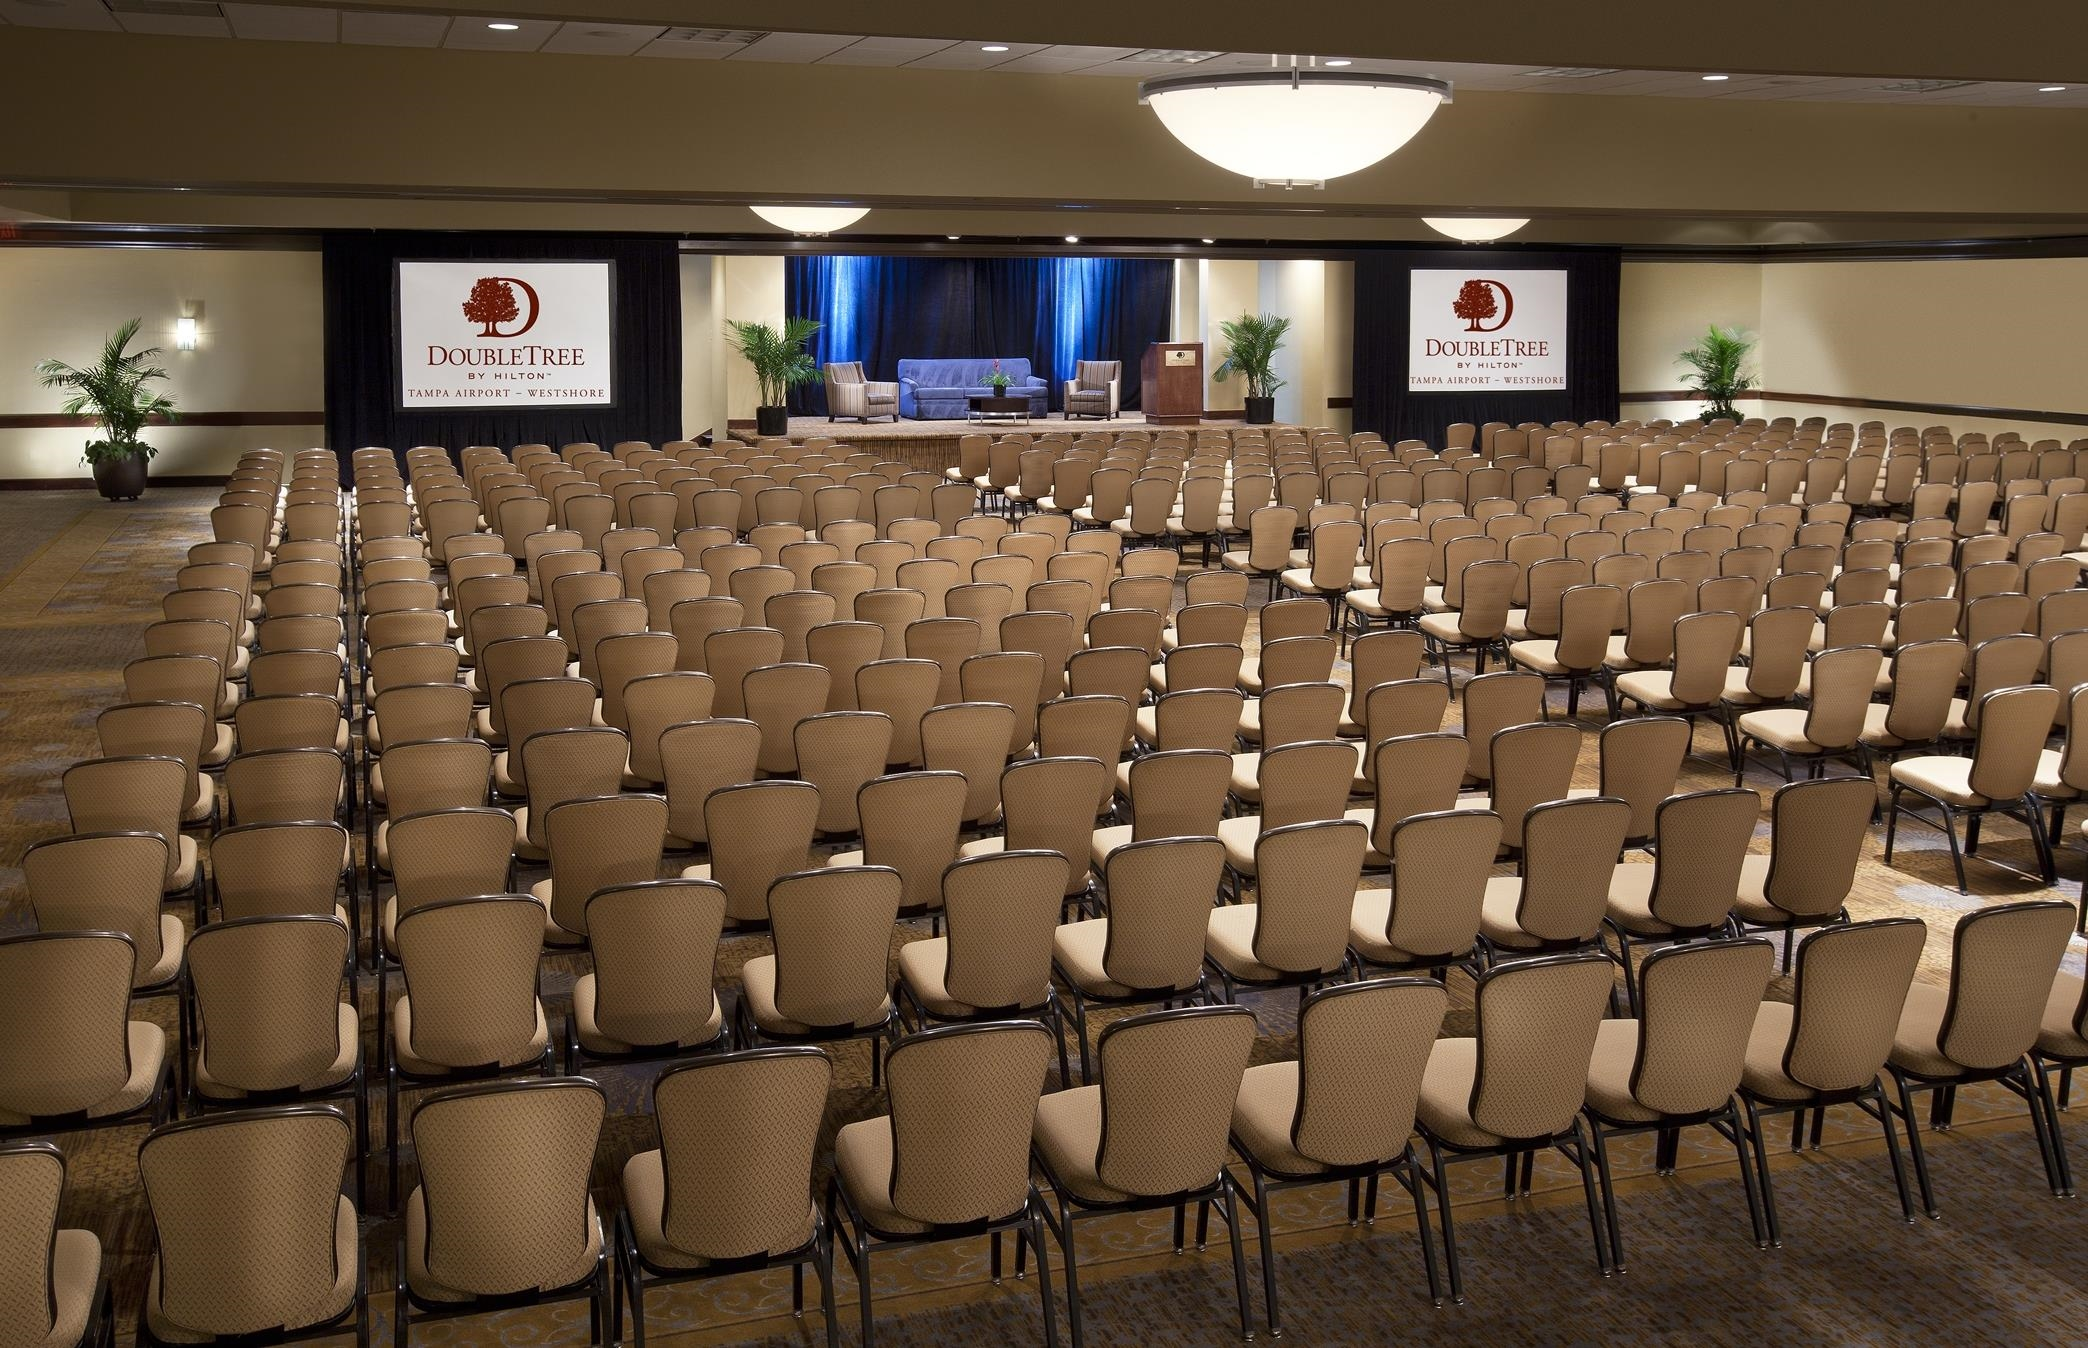 DoubleTree by Hilton Hotel Tampa Airport - Westshore image 9